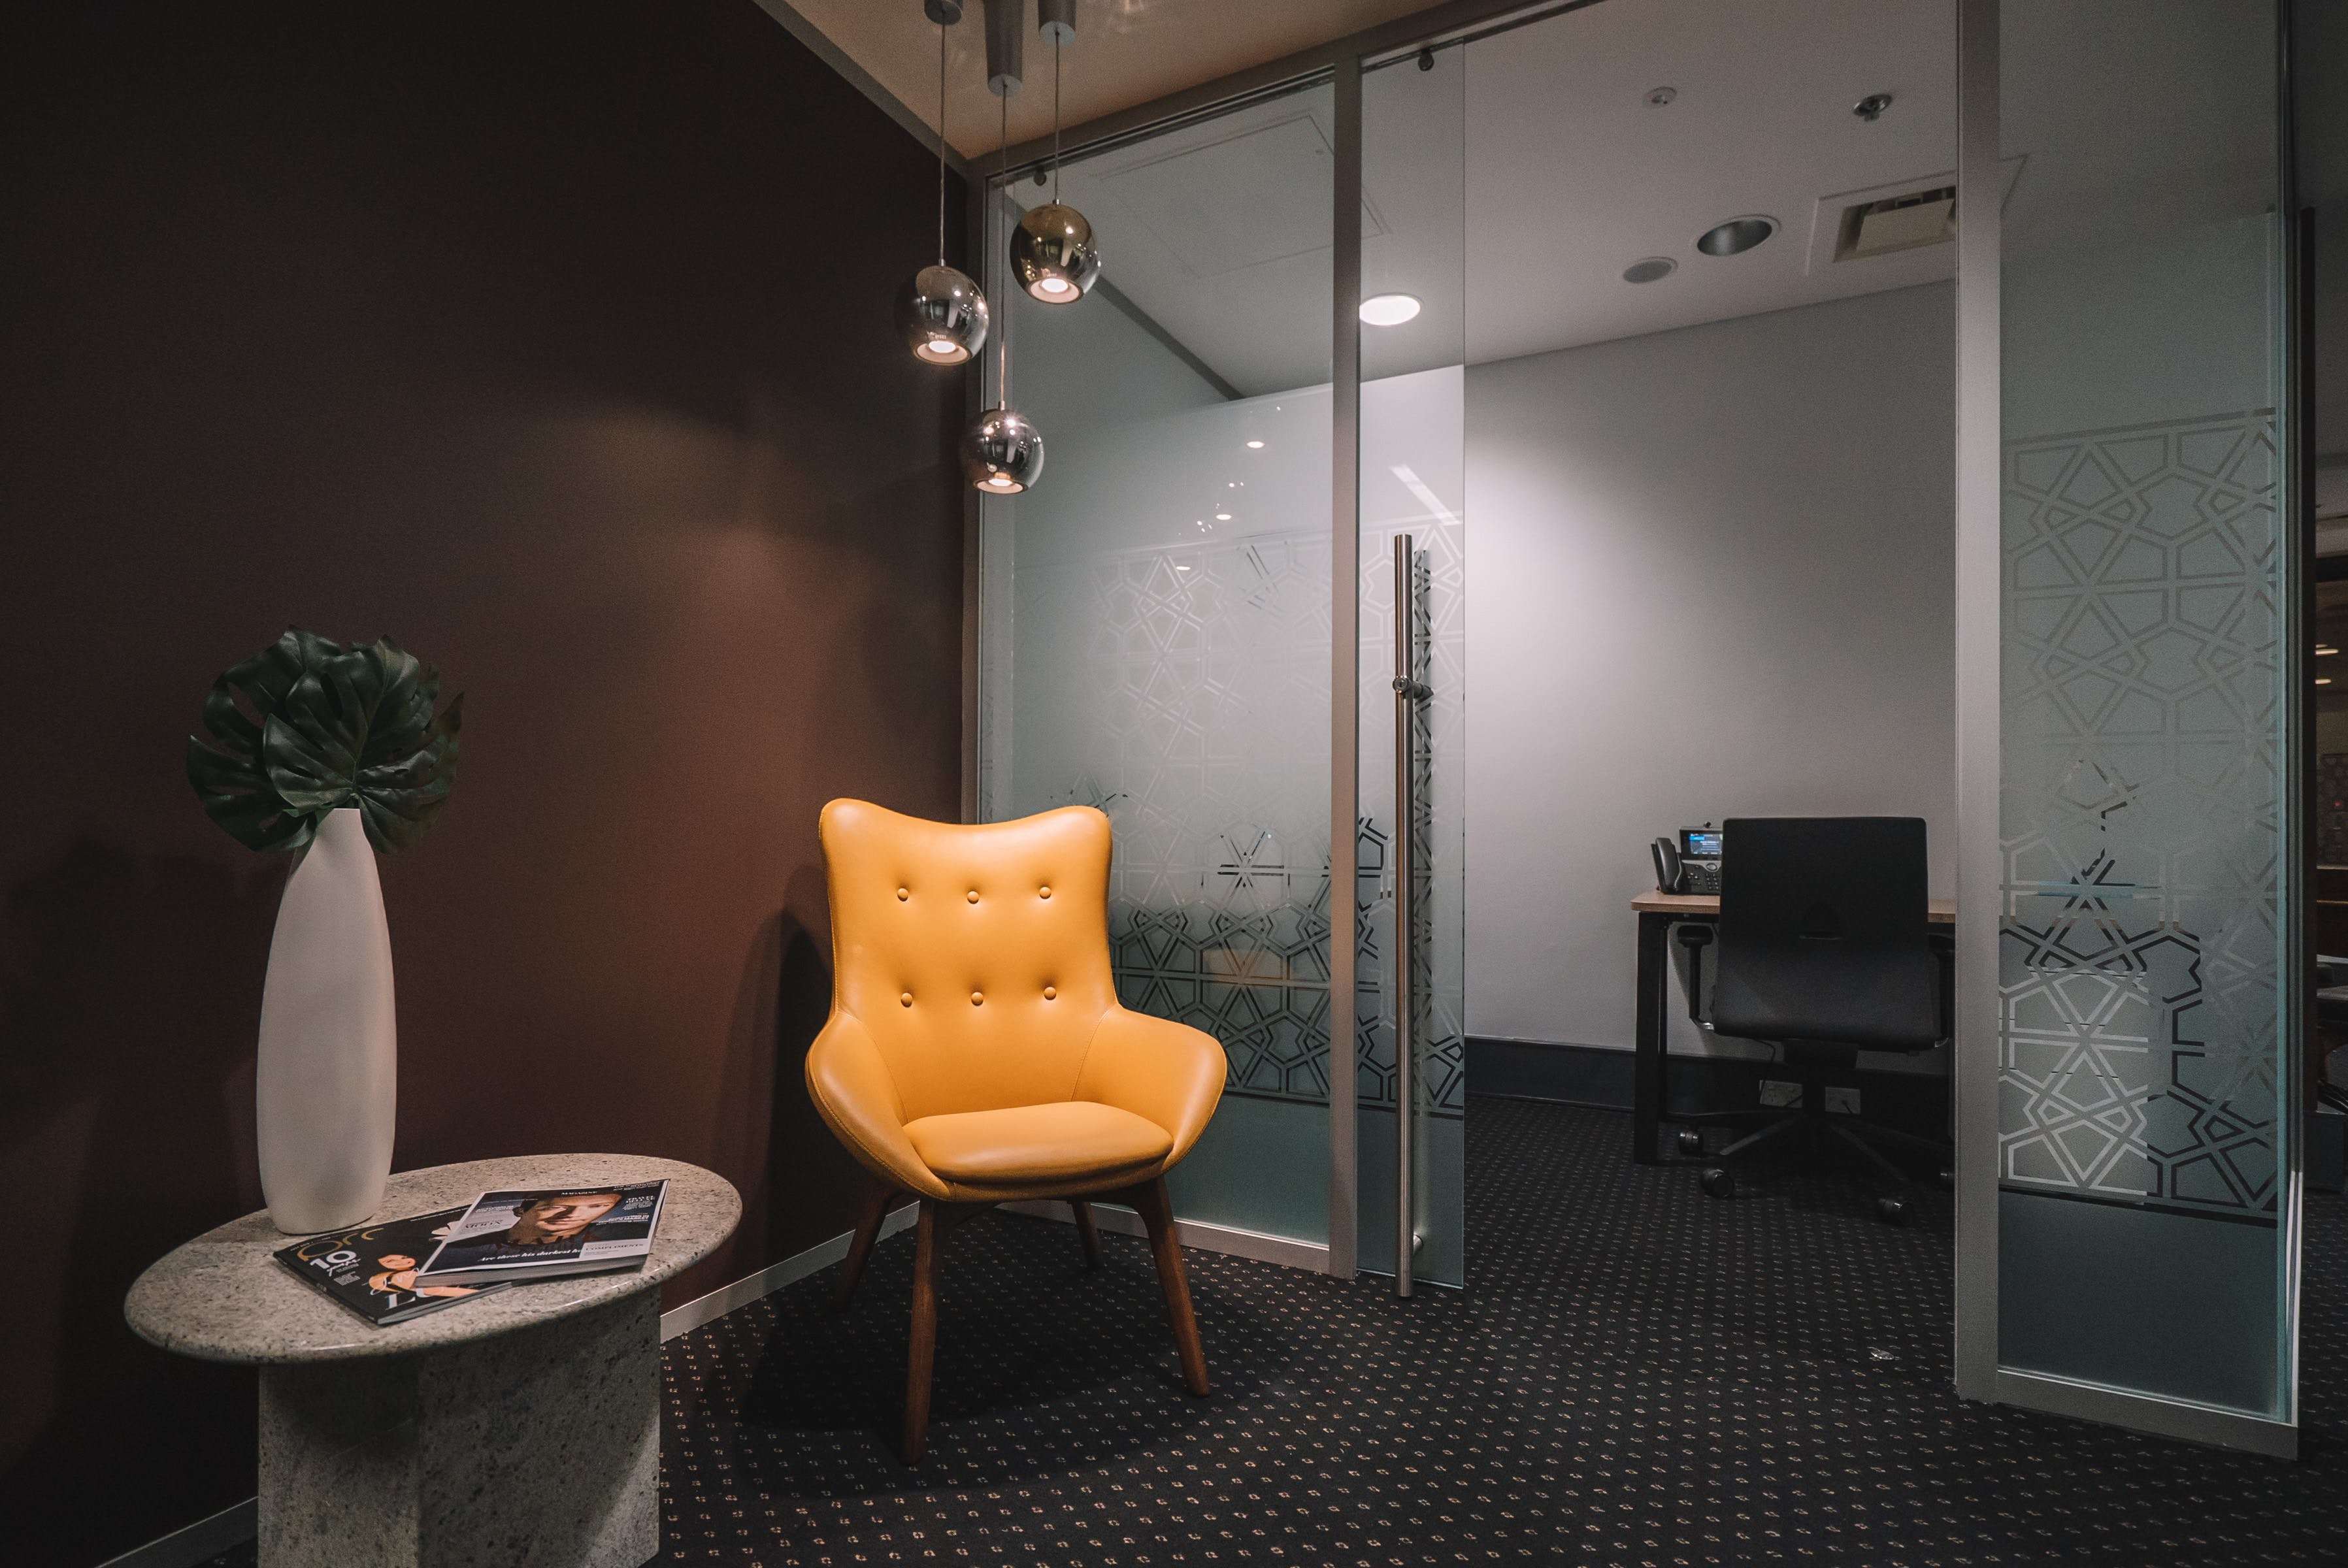 Premium Day Suite with CBD views, private office at Nishi, image 9